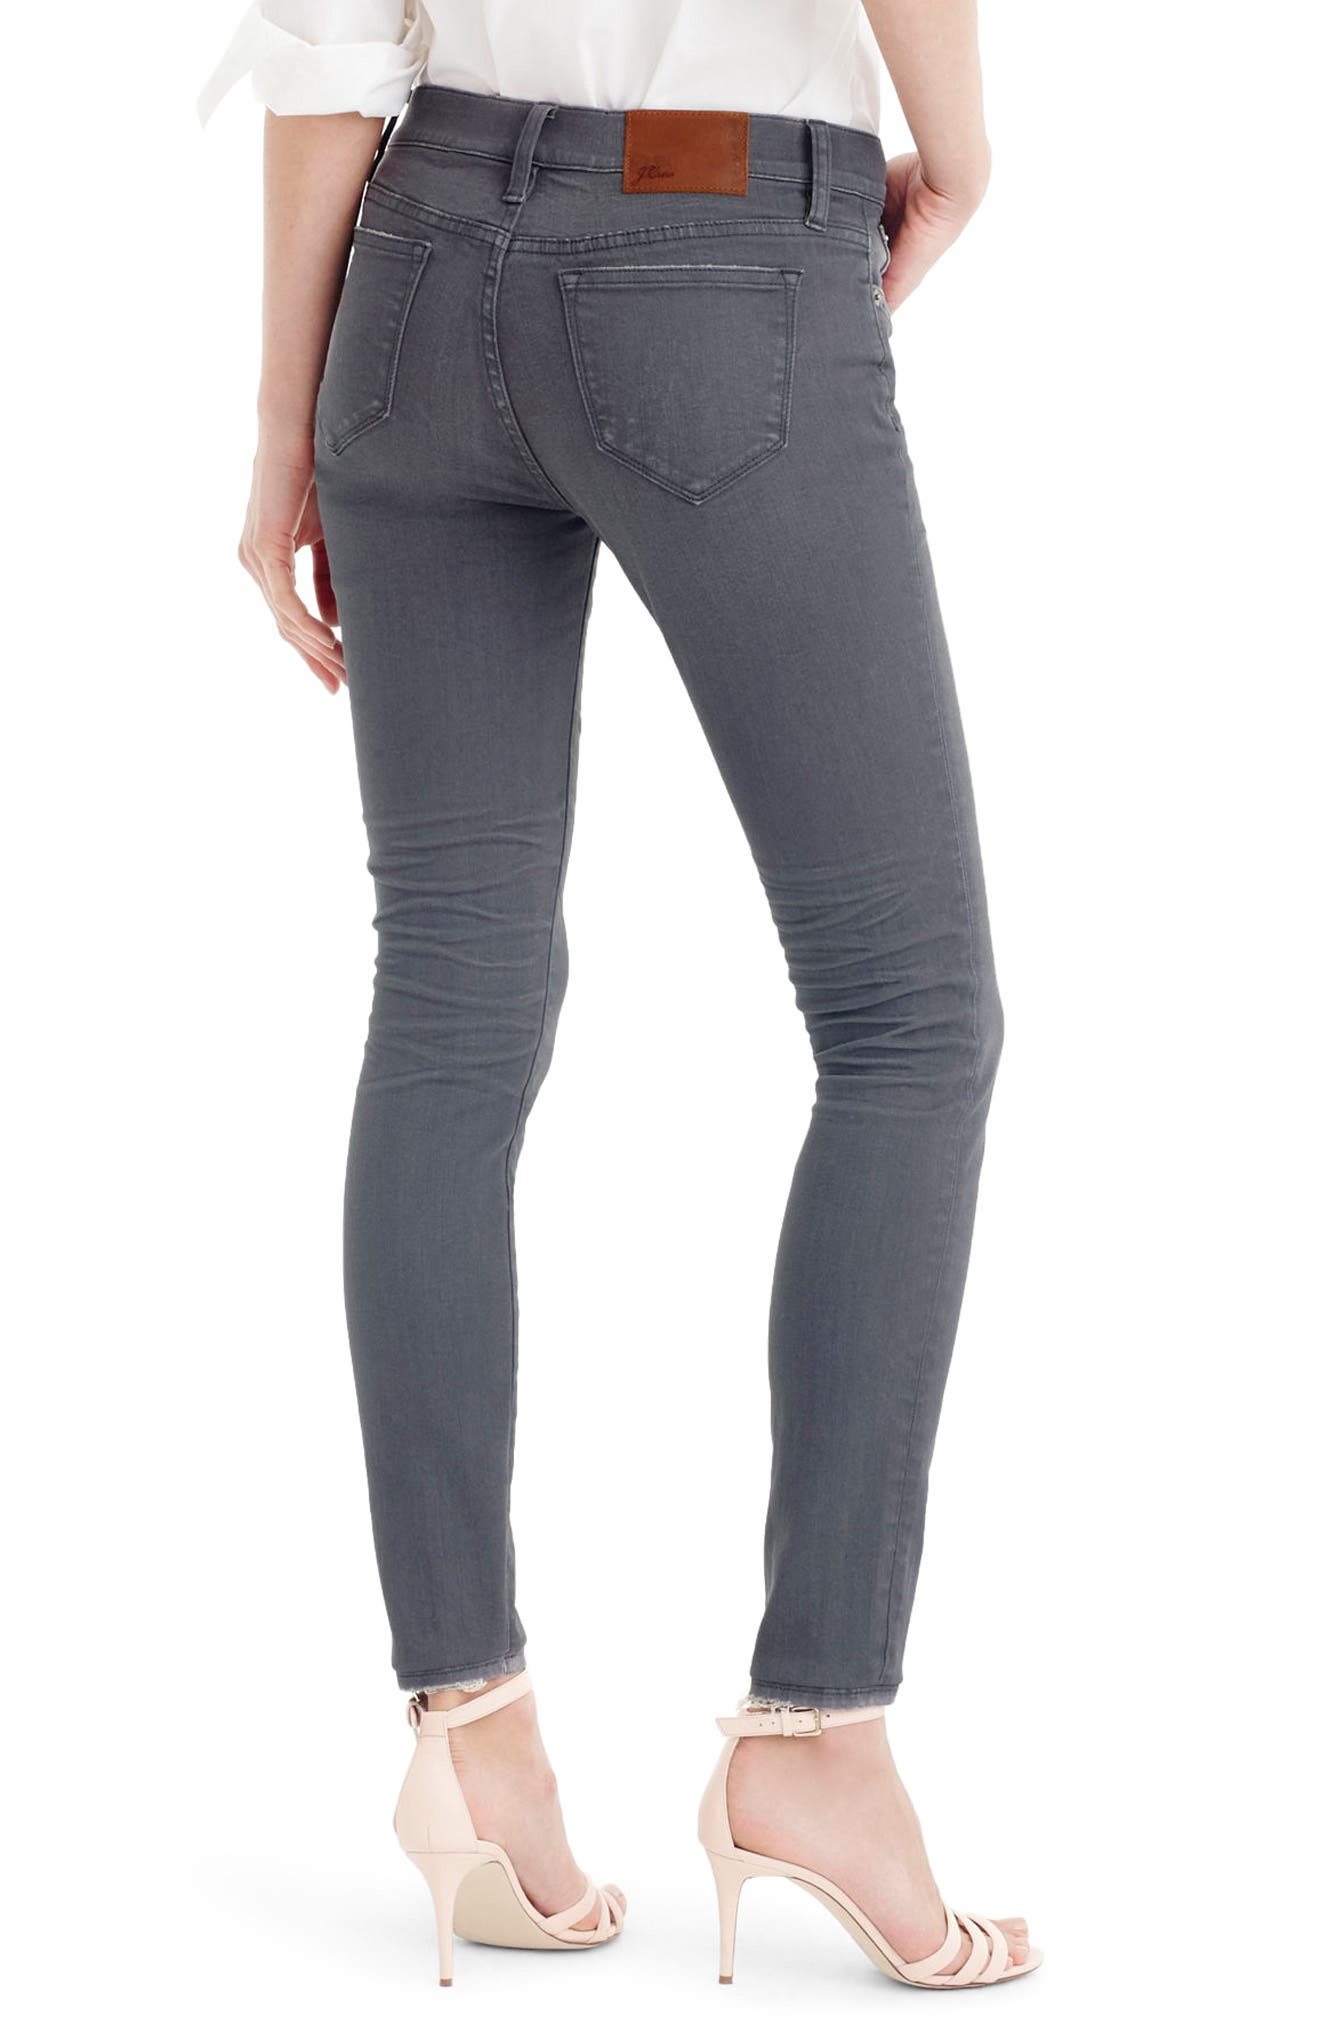 Toothpick Jeans,                             Alternate thumbnail 2, color,                             020